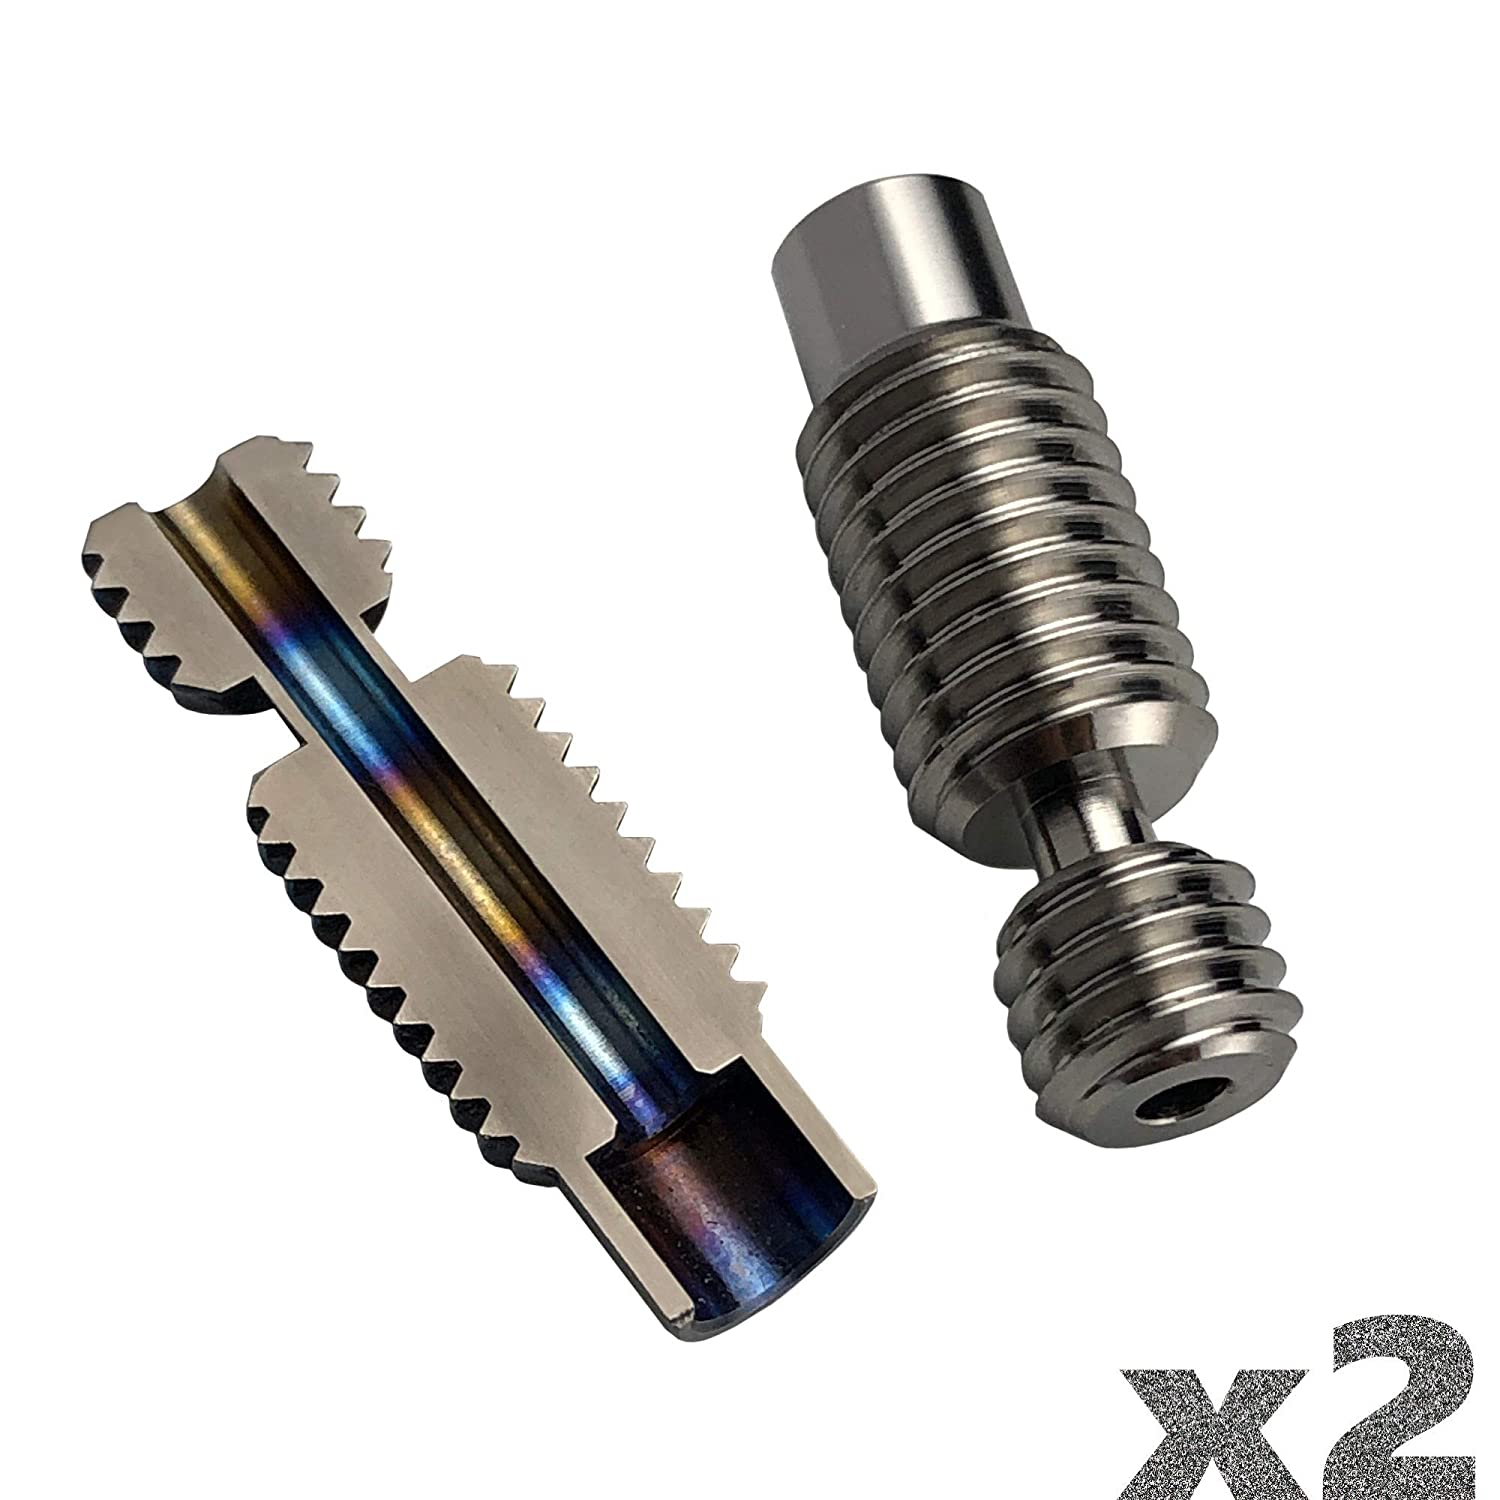 Titanium V6 heatbreak V2.3 by 3D passion (1.75mm, All-Metal, Our in-House New Design), 2-Pack.